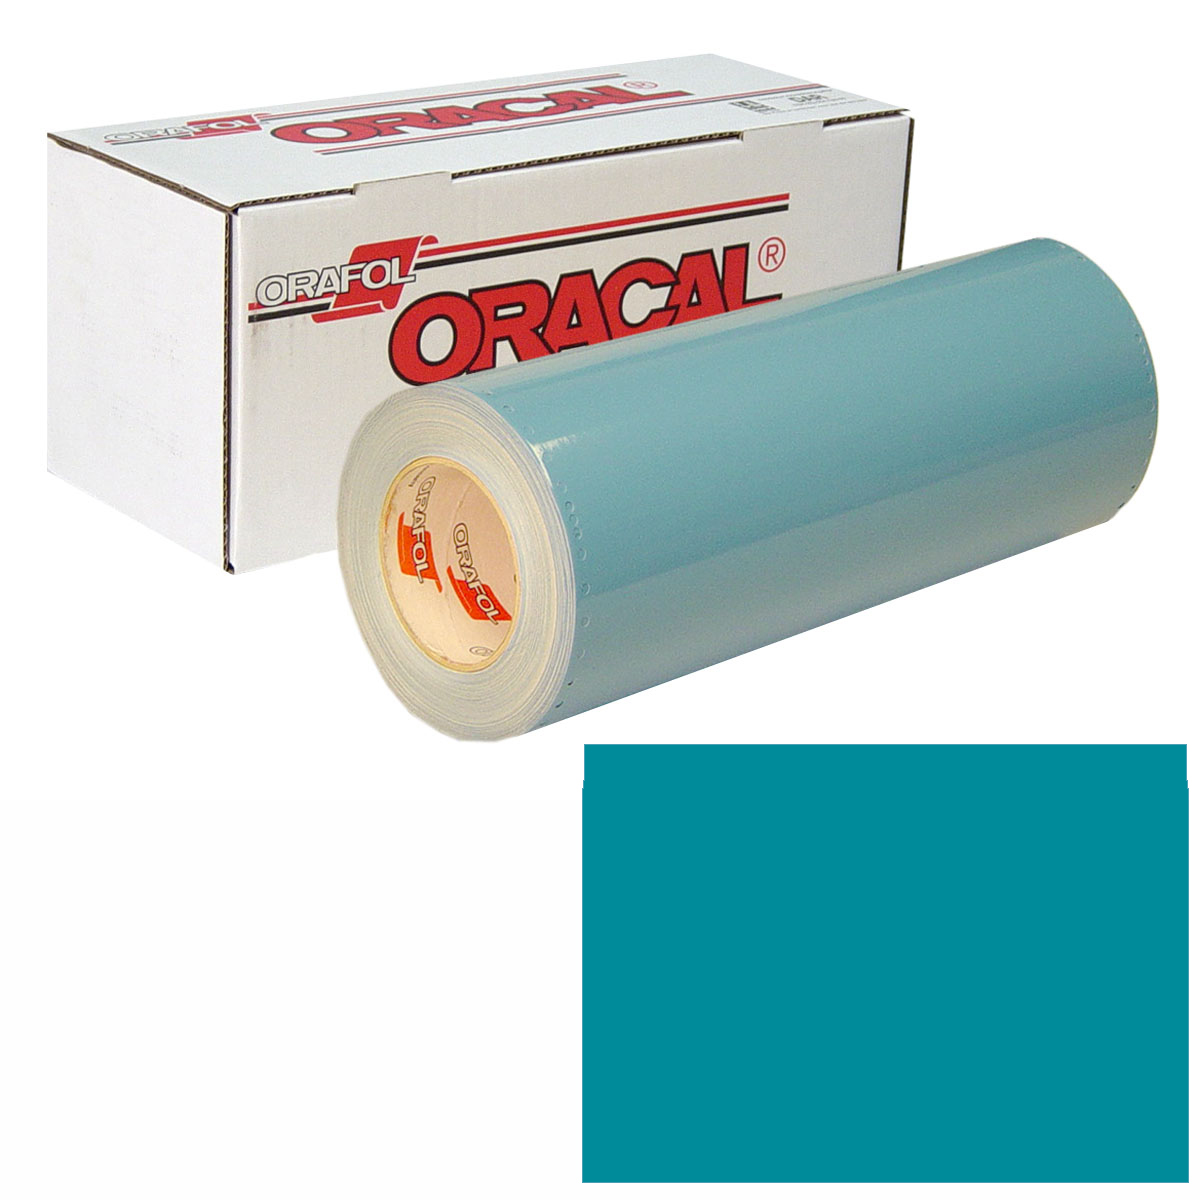 ORACAL 751 15In X 10Yd 066 Turquoise Blue